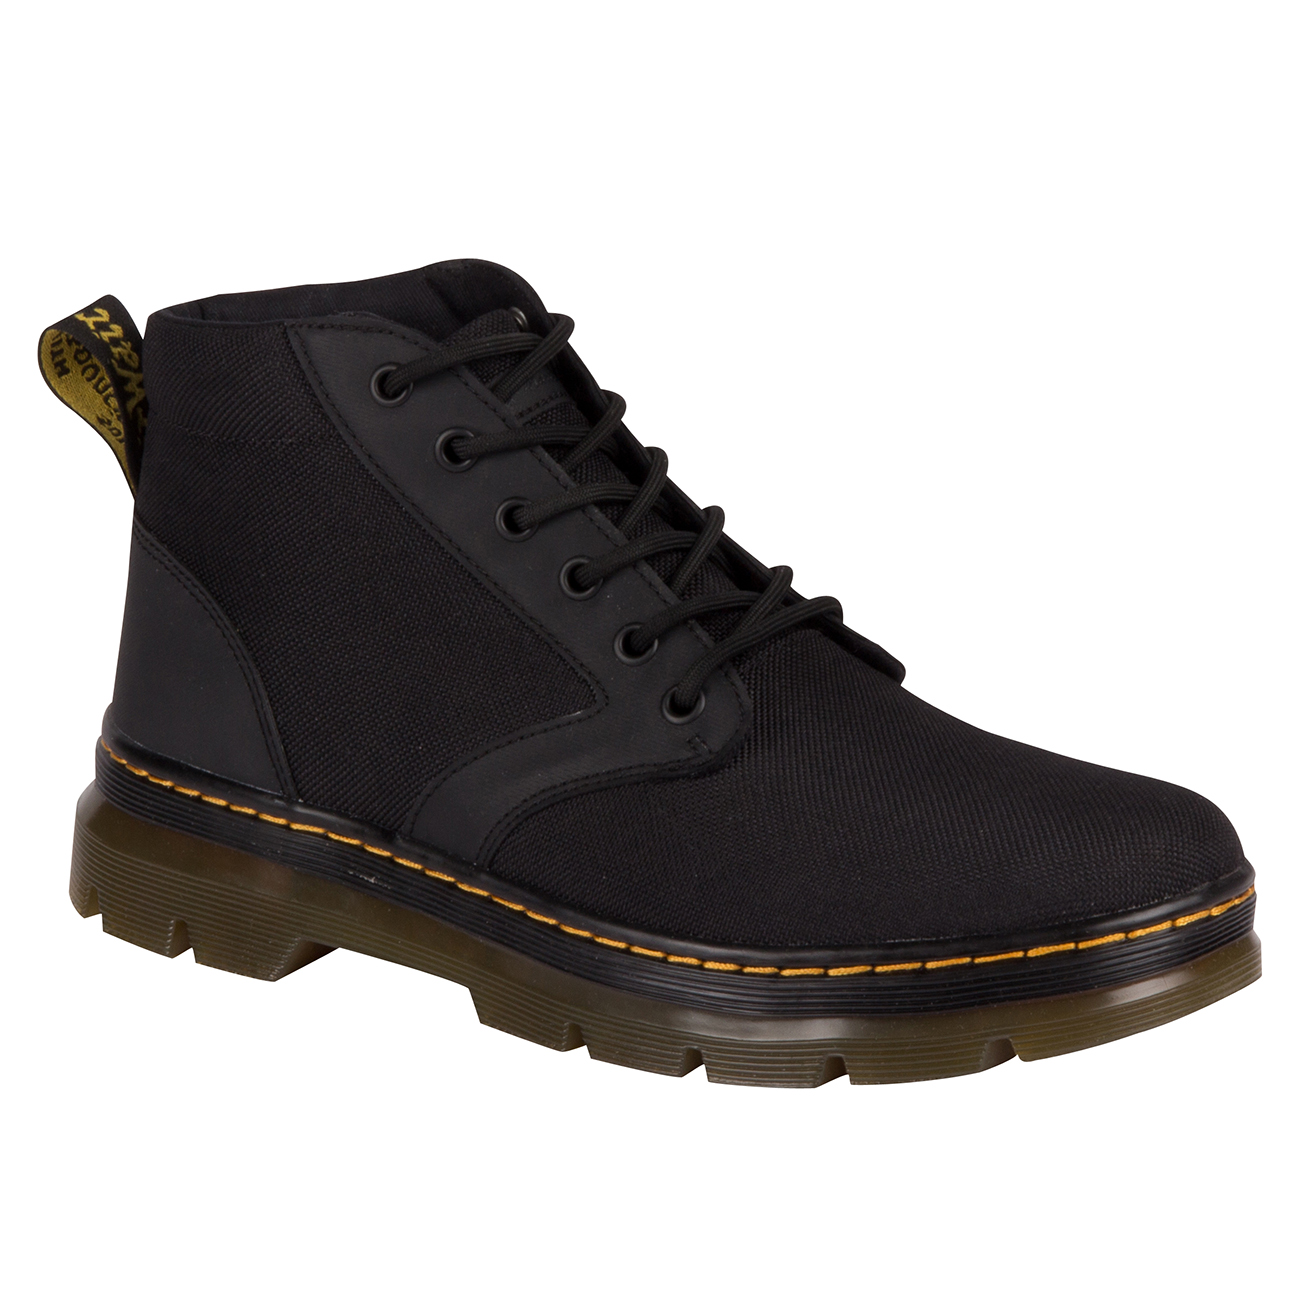 Unisex Adults Dr Martens Bony Nylon